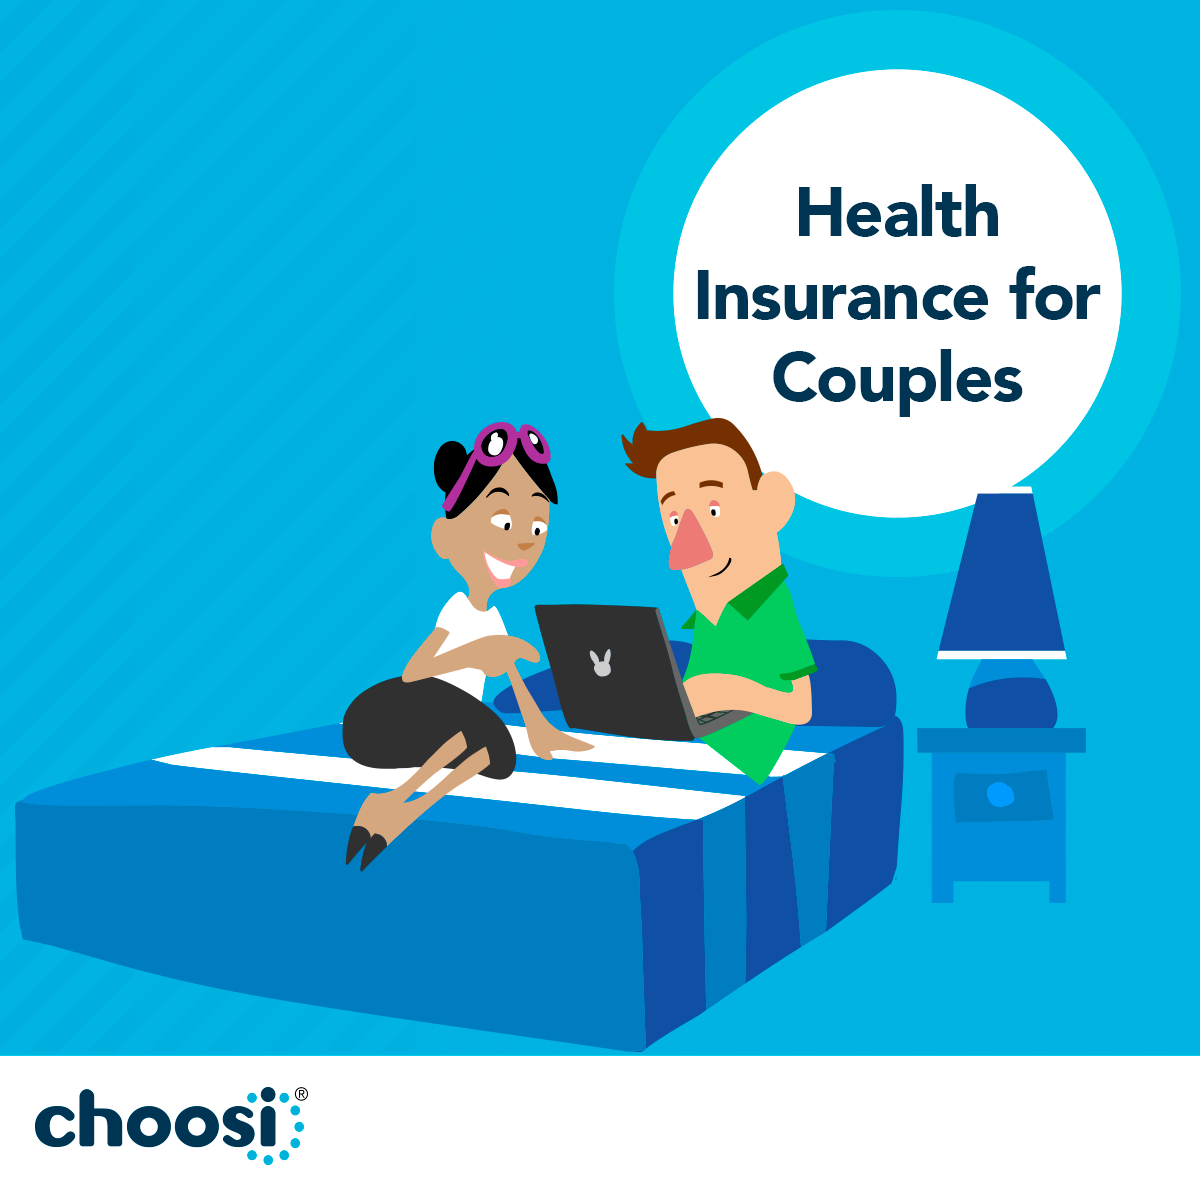 Planning on taking out couples health insurance? Here are